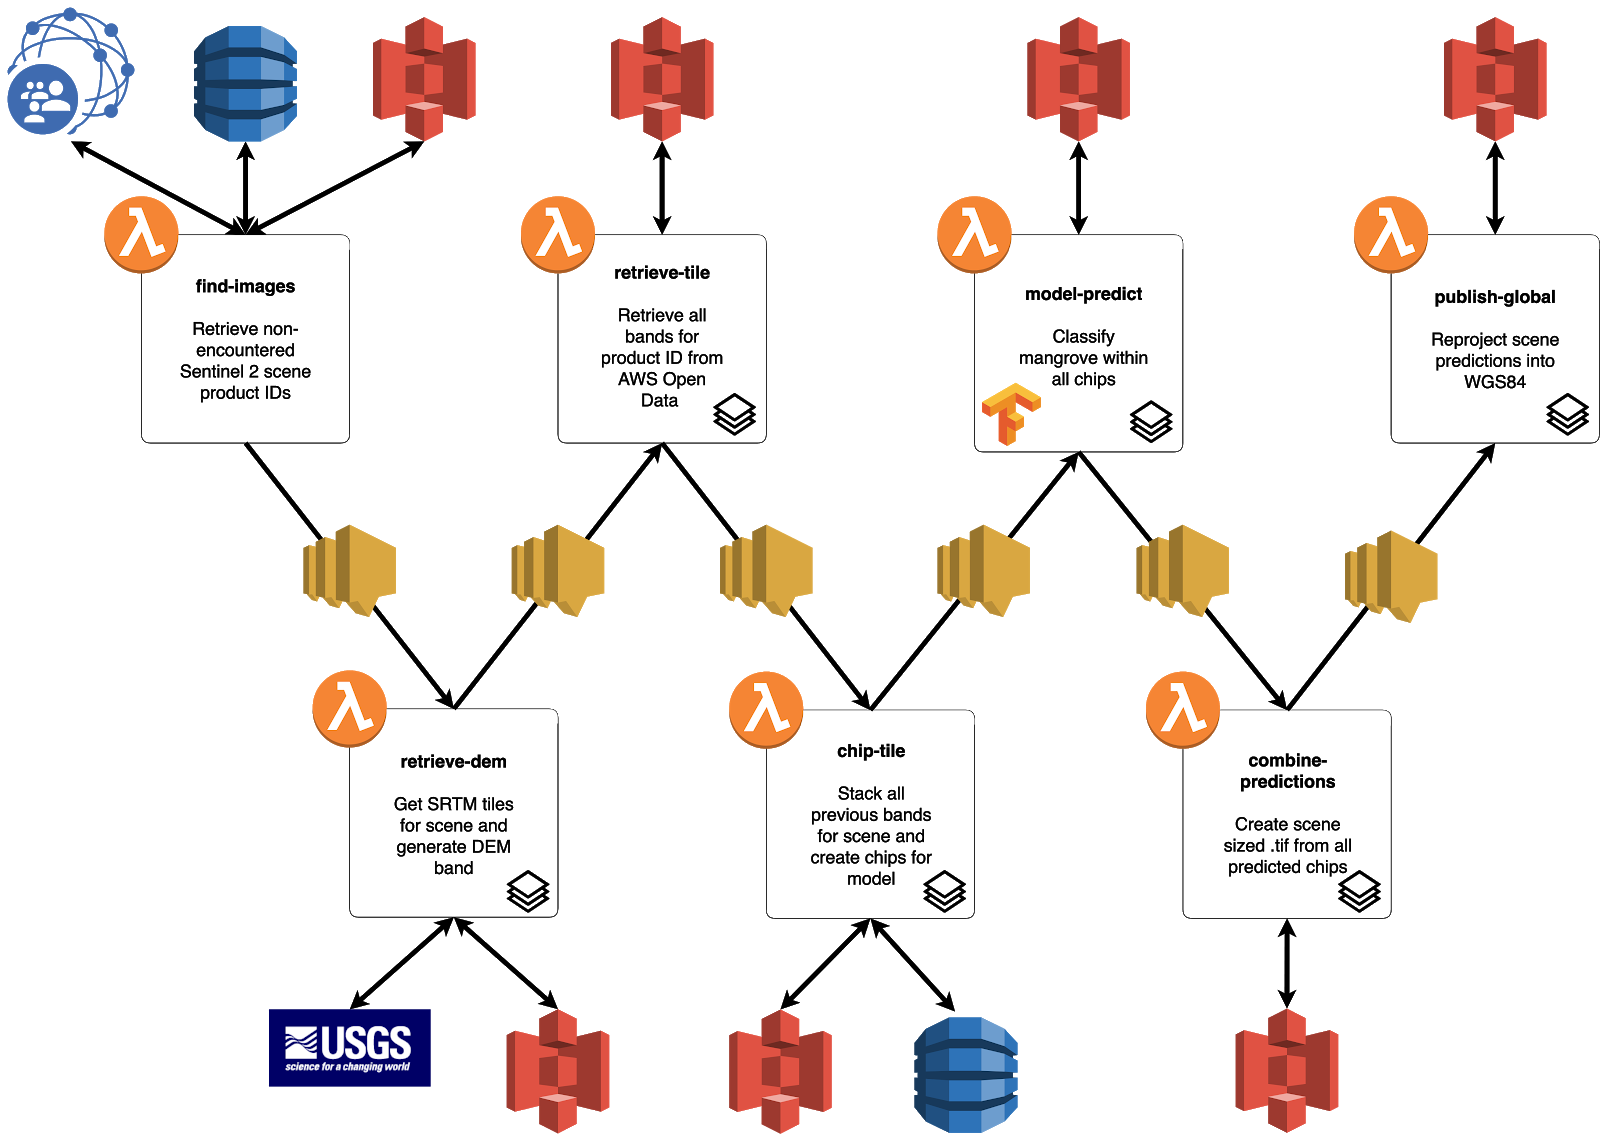 A flow diagram showing the 7 Lambda functions forming the pipeline, with icons that show which AWS service is being used